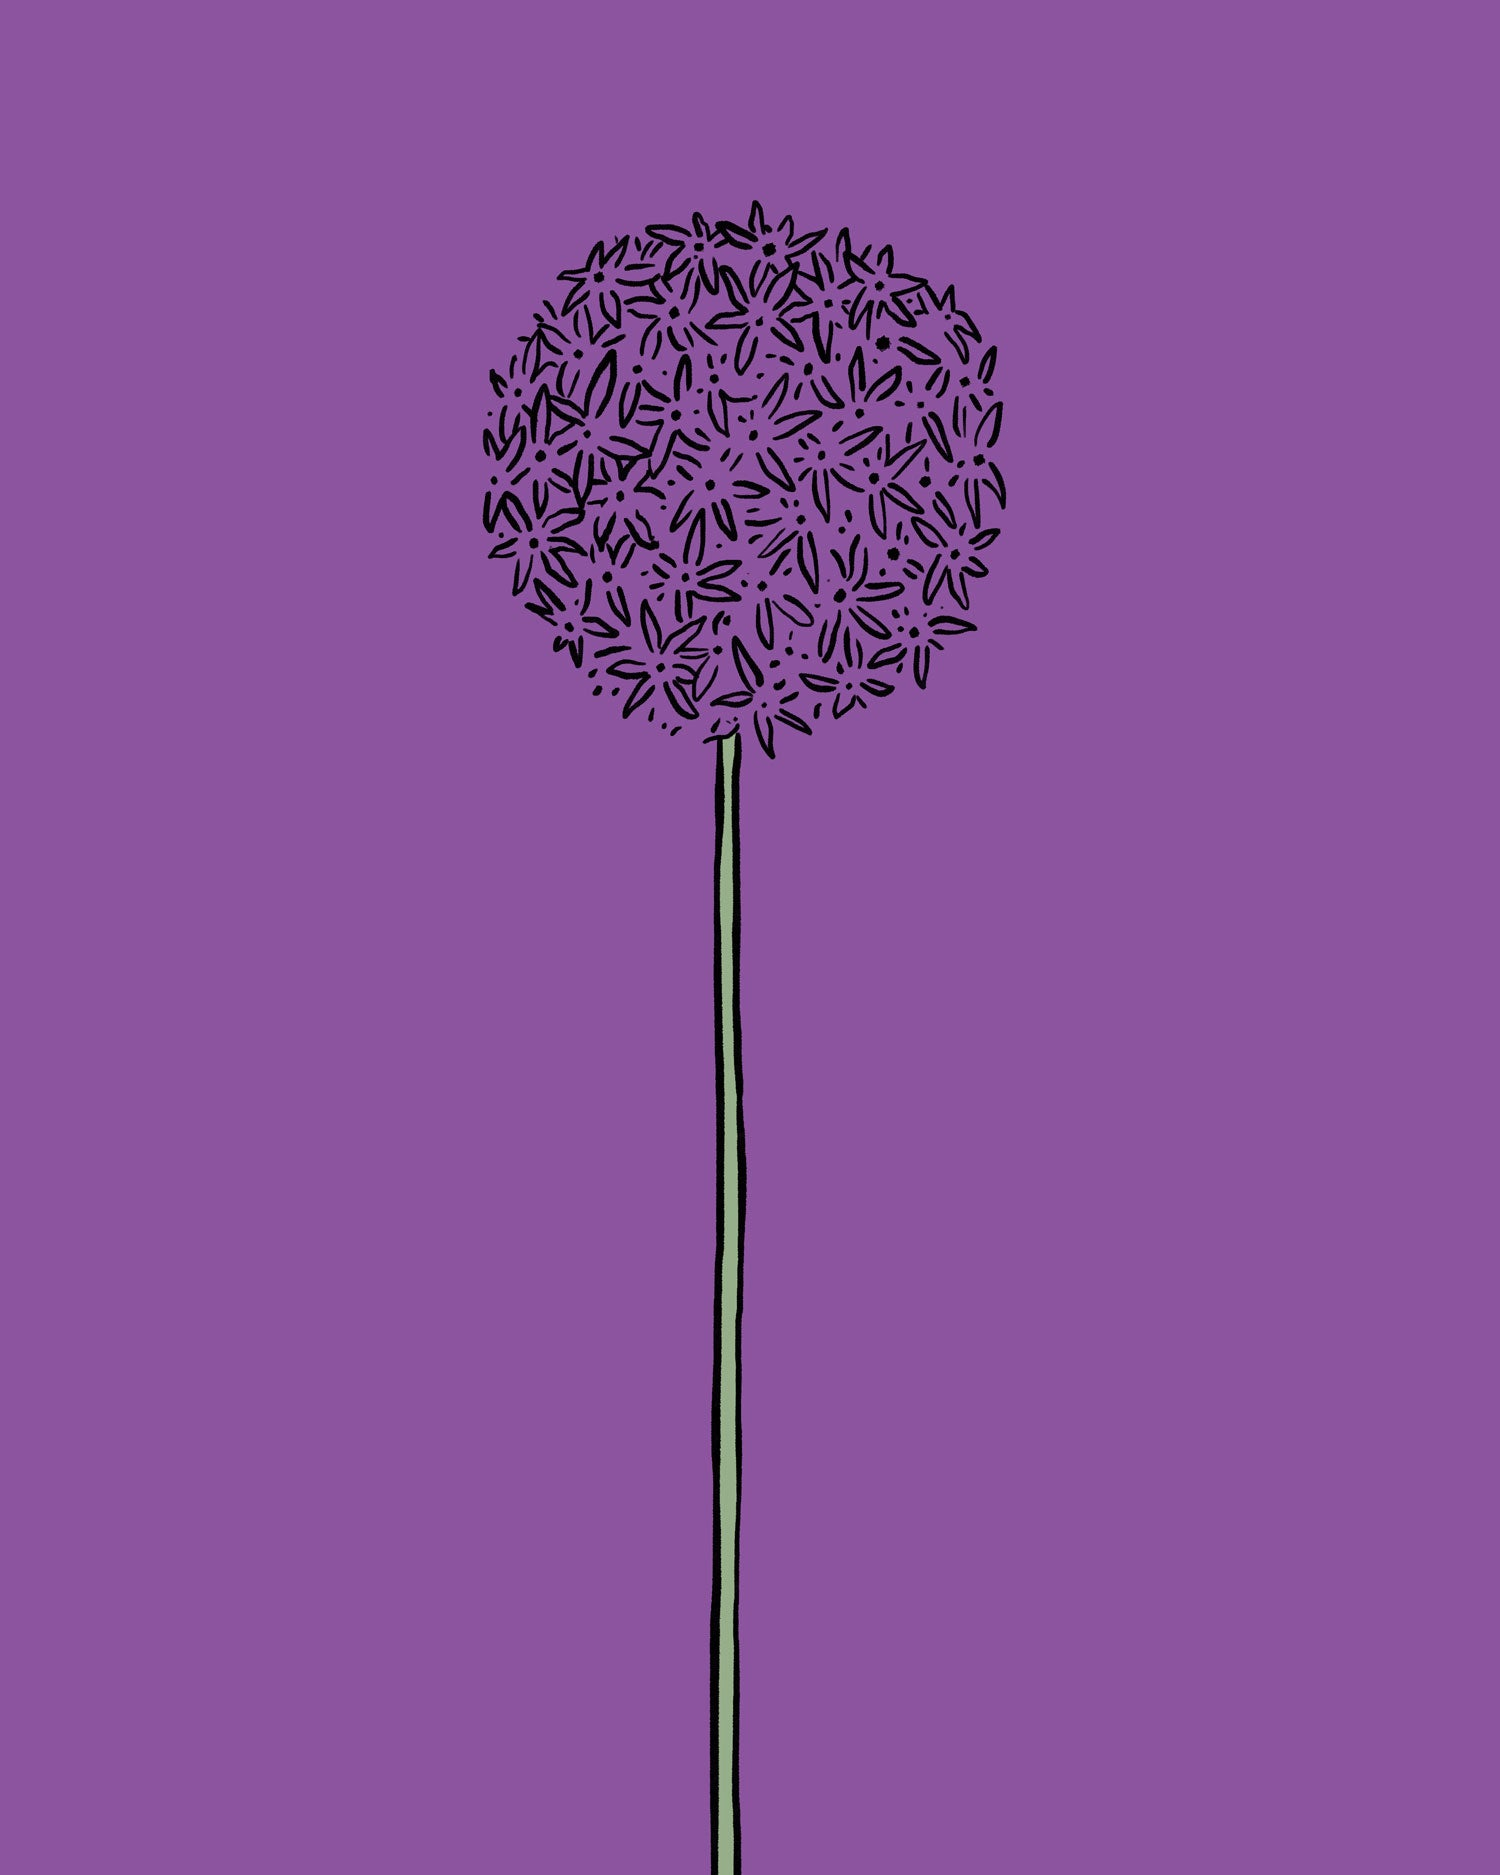 Bloomon_Floroscoop_2020_Allium-1